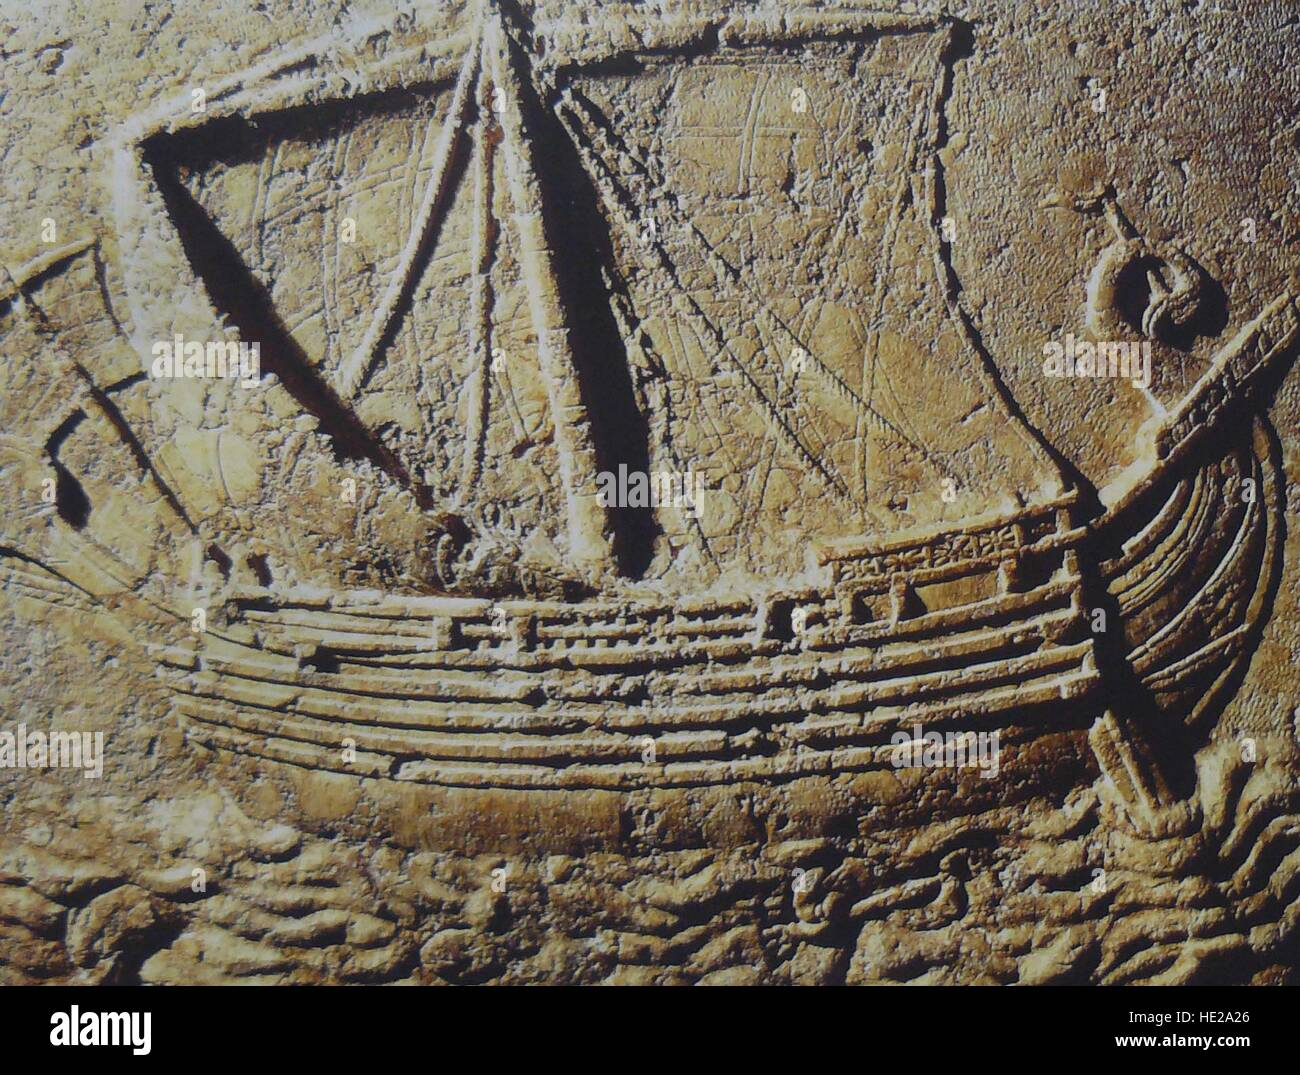 Phoenician merchant ship, stone carving dating c. 1st. C. AD. - Stock Image